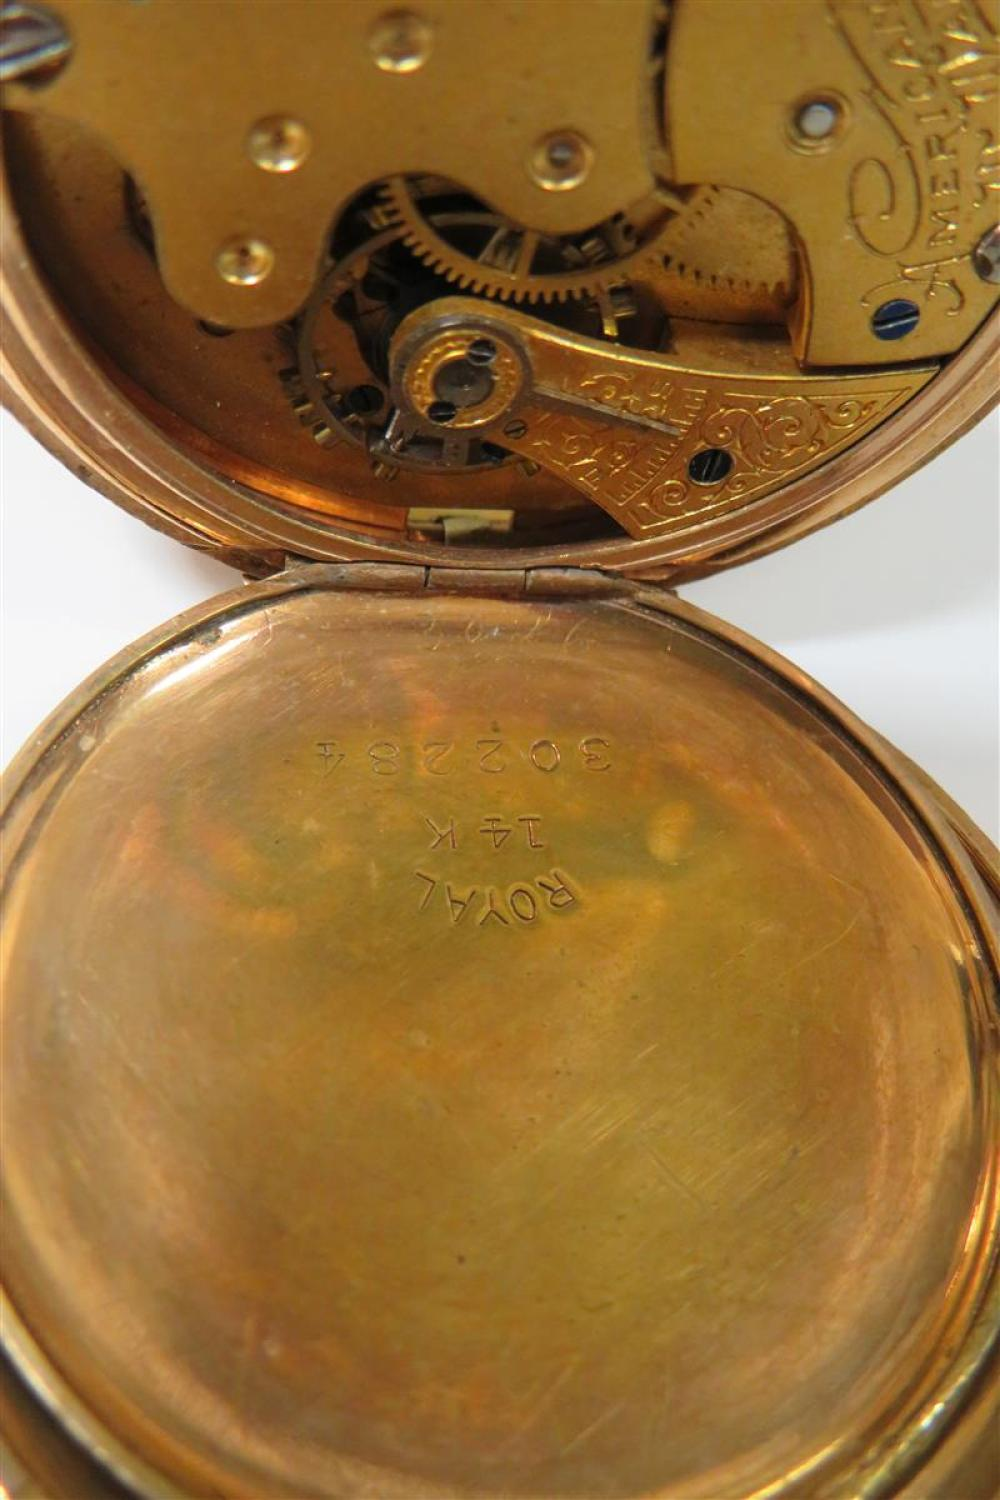 Waltham & Elgin gold hunting case pocket watches (2pcs)